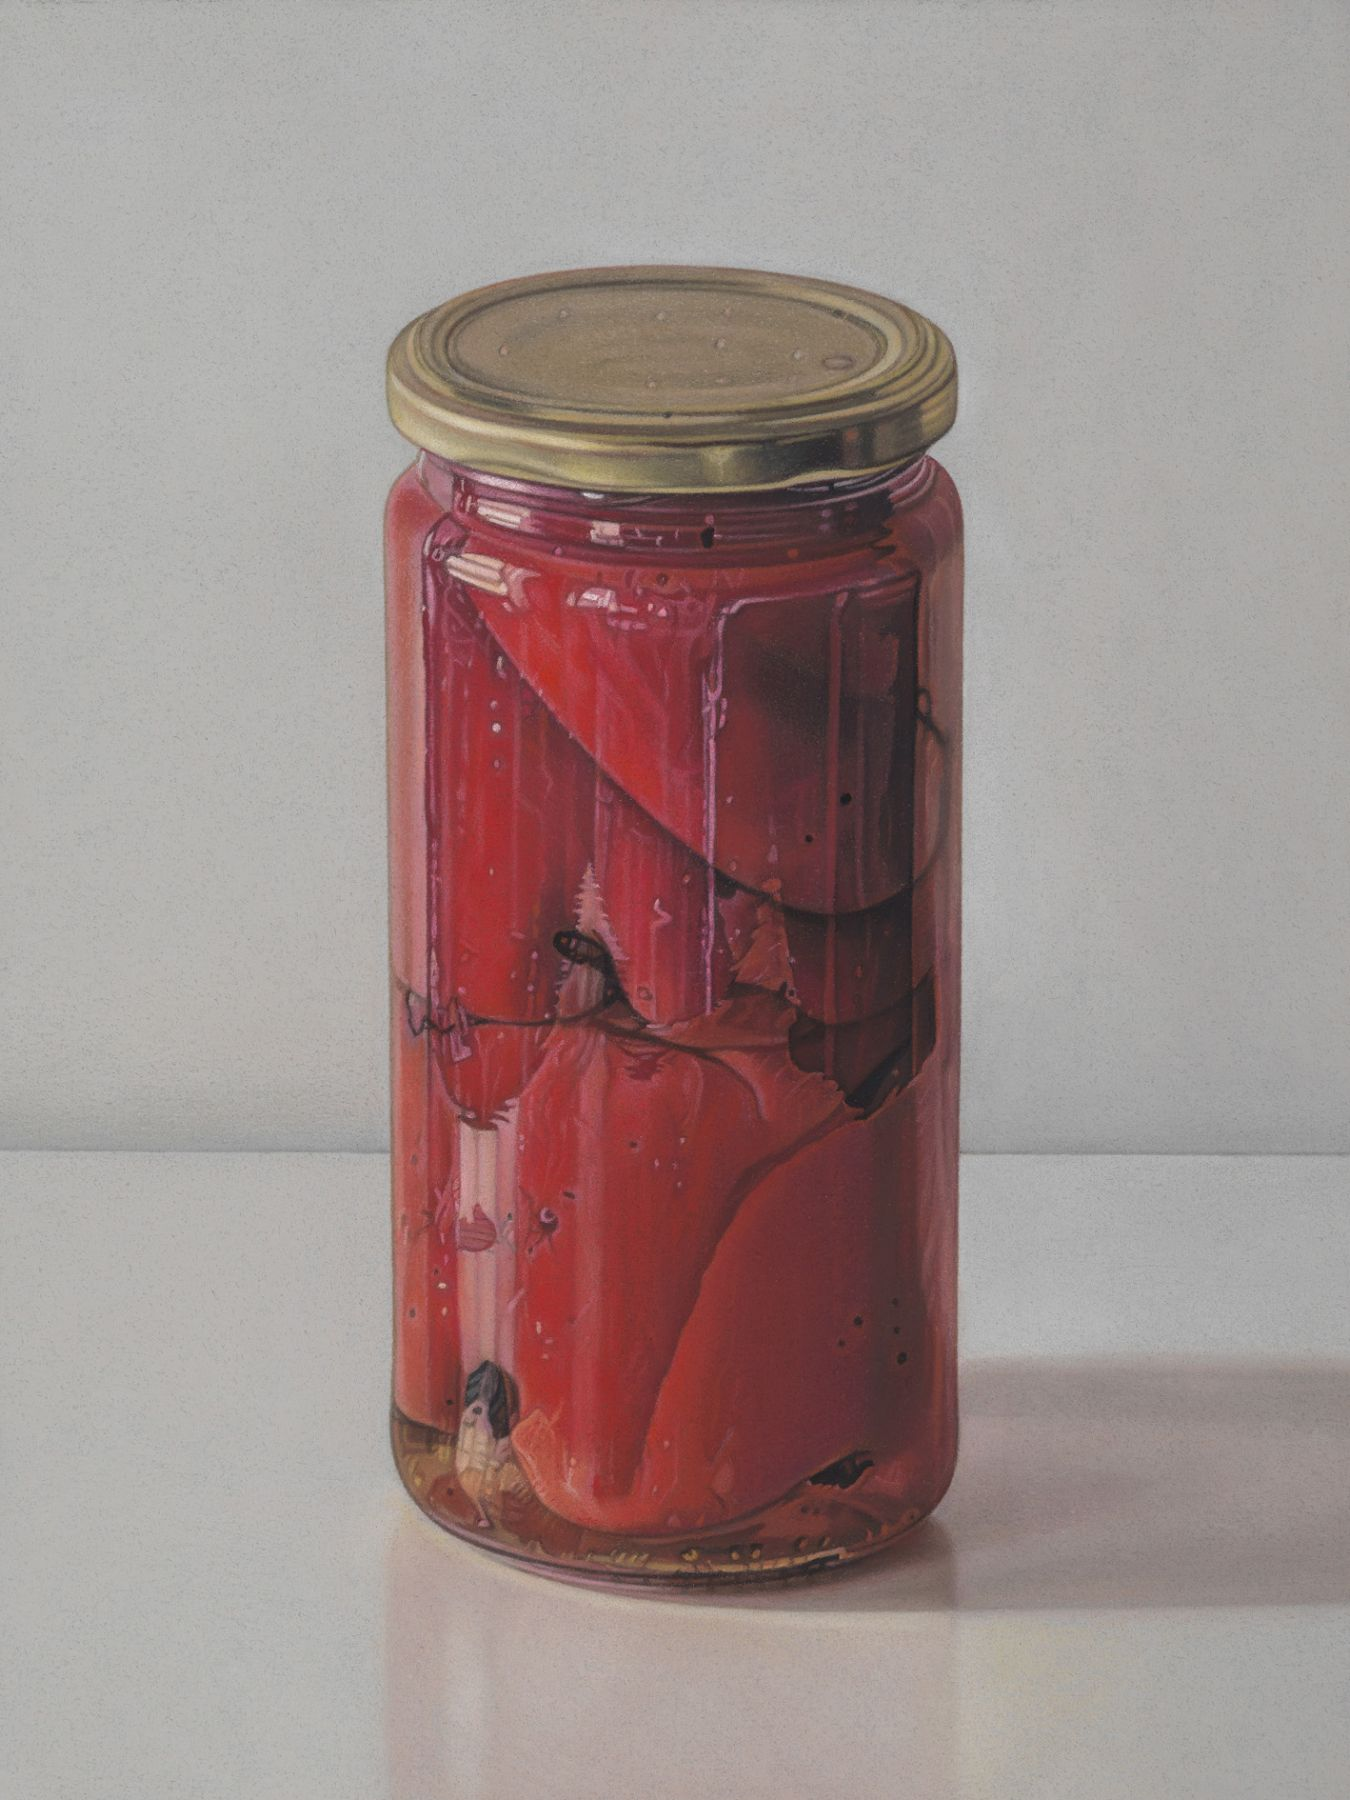 jane lund, Peppers, 2013, pastel on paper, 8 1/2 x 11 1/8 inches